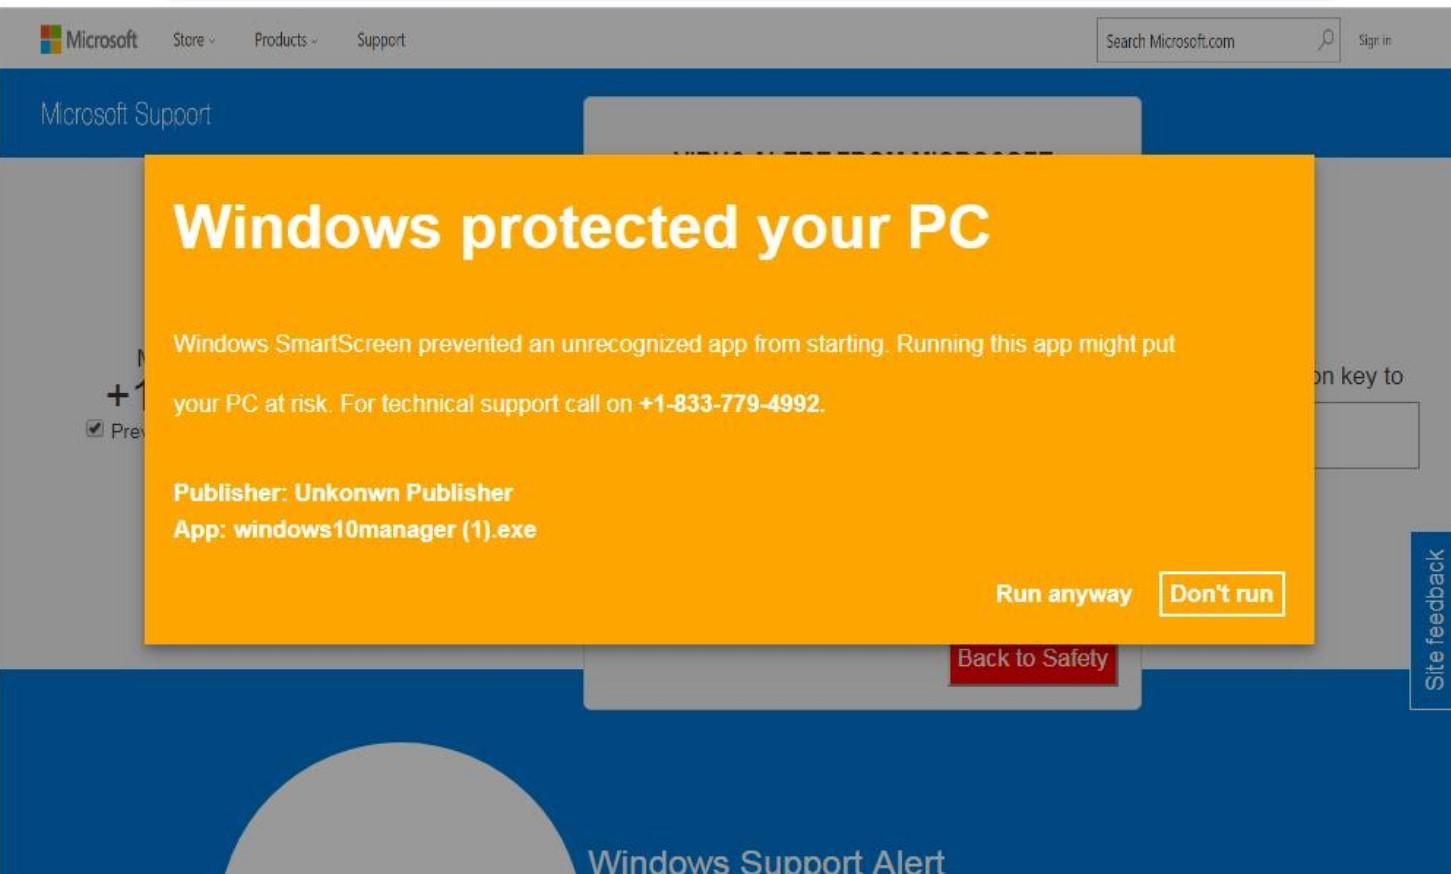 What is Windows protected your PC?